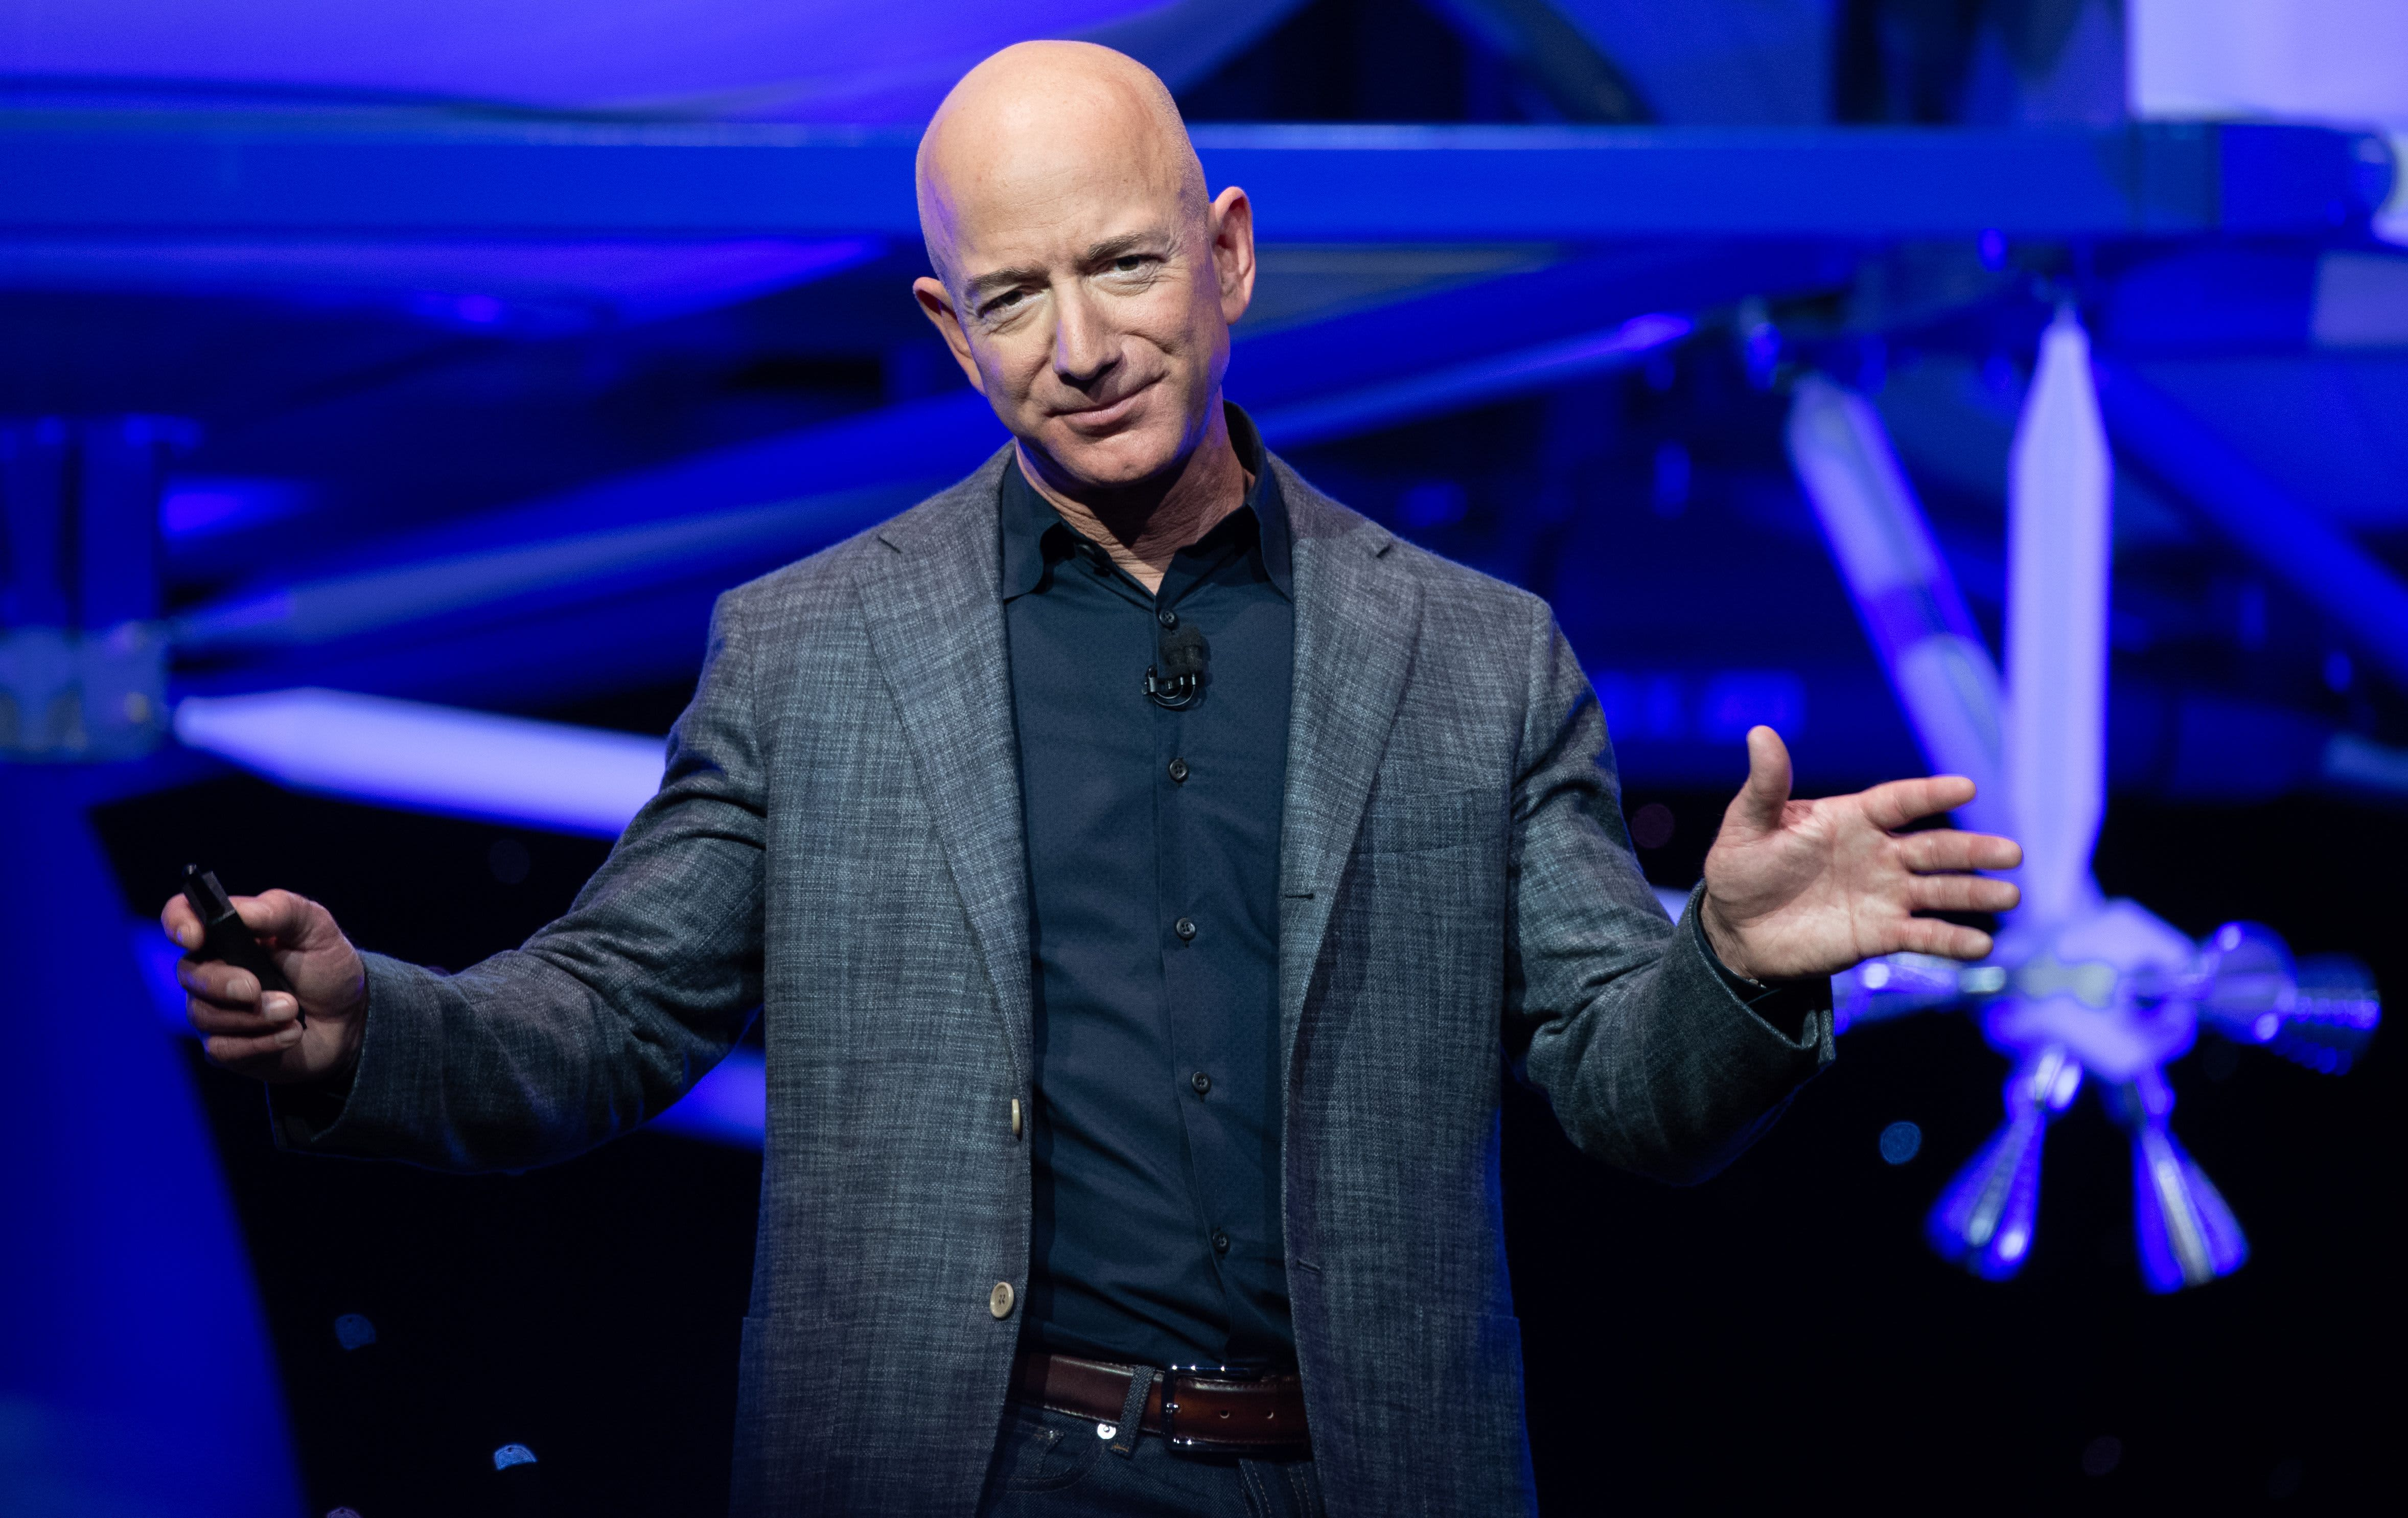 Amazon has been on a Spending Spree, Preparing for the Future as Revenue Growth Slows